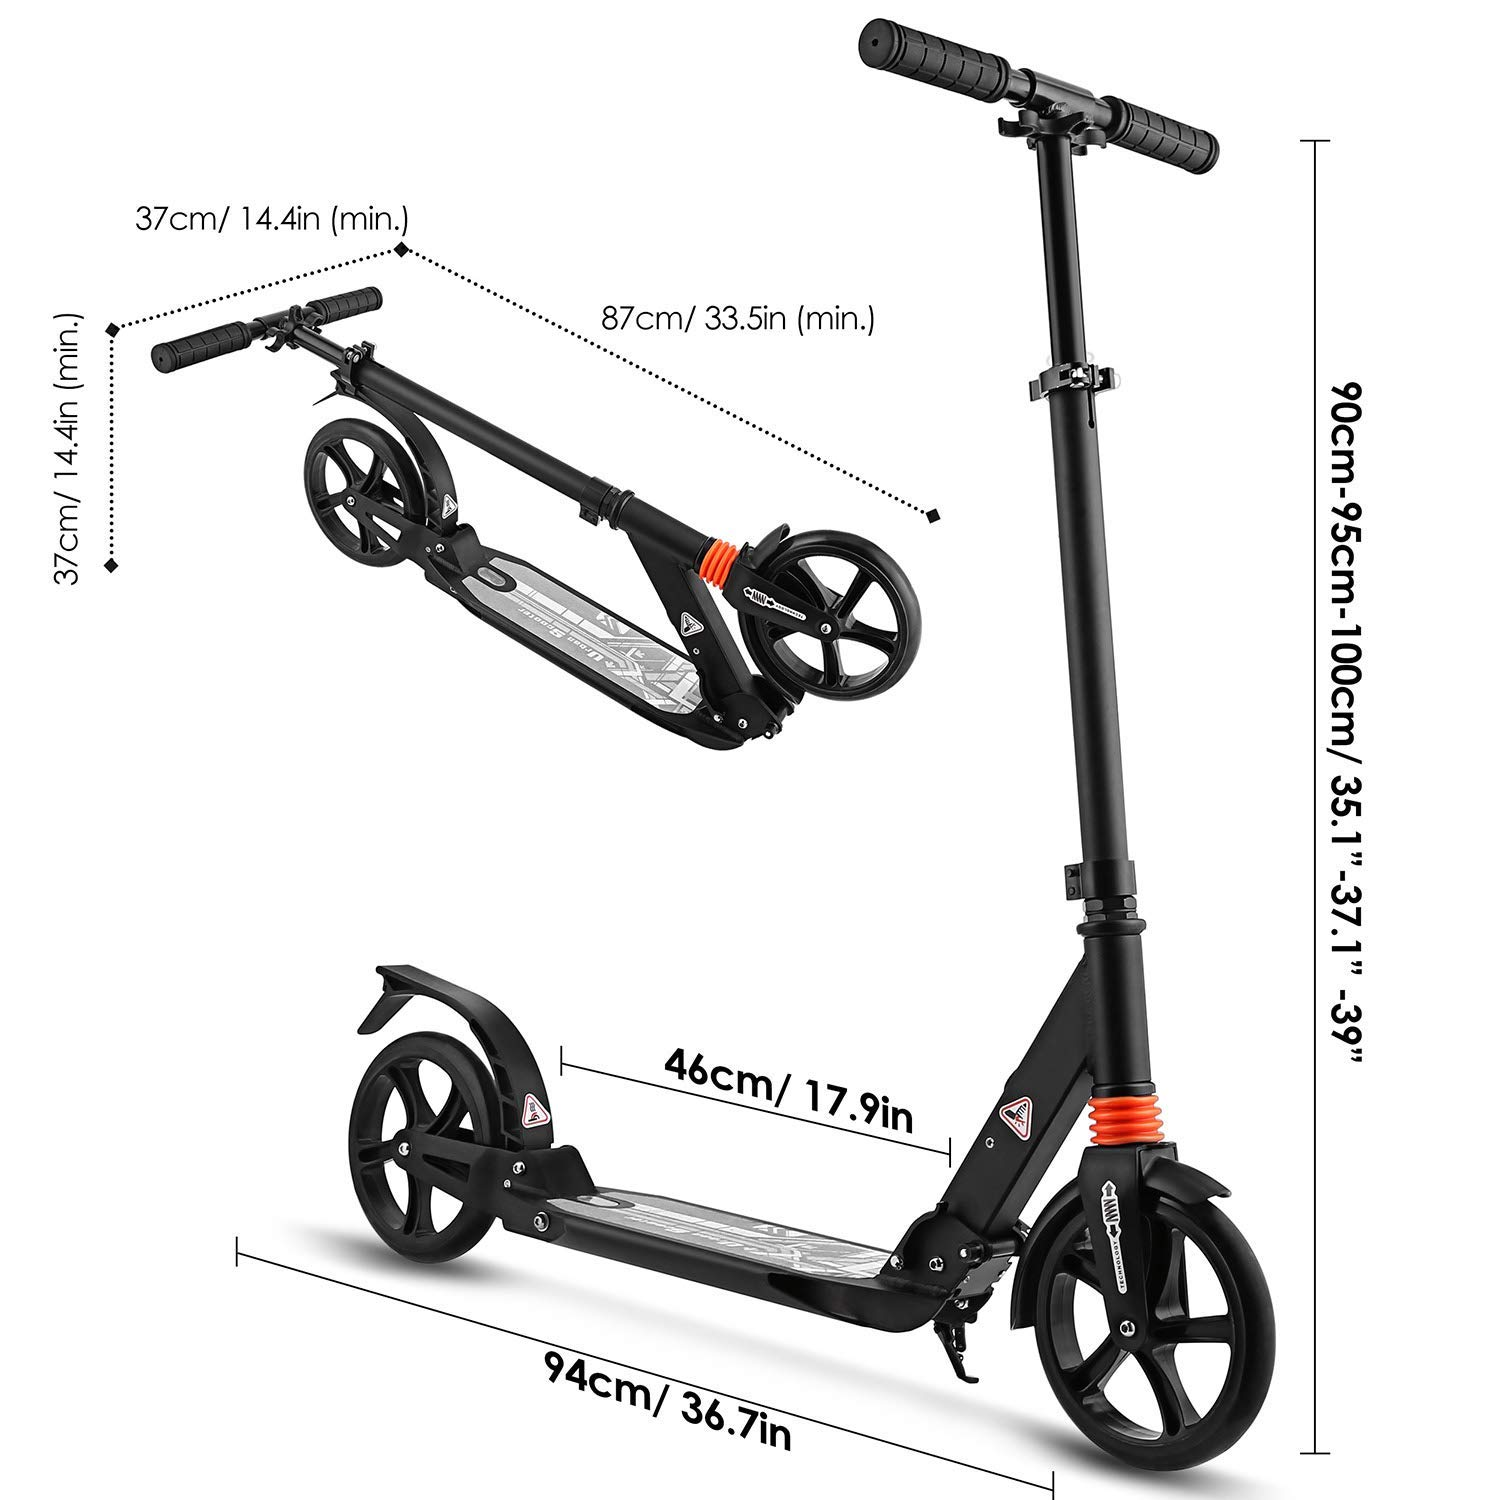 Top 10 Best Kick Scooter For Commuting - Buyer's Guide 10